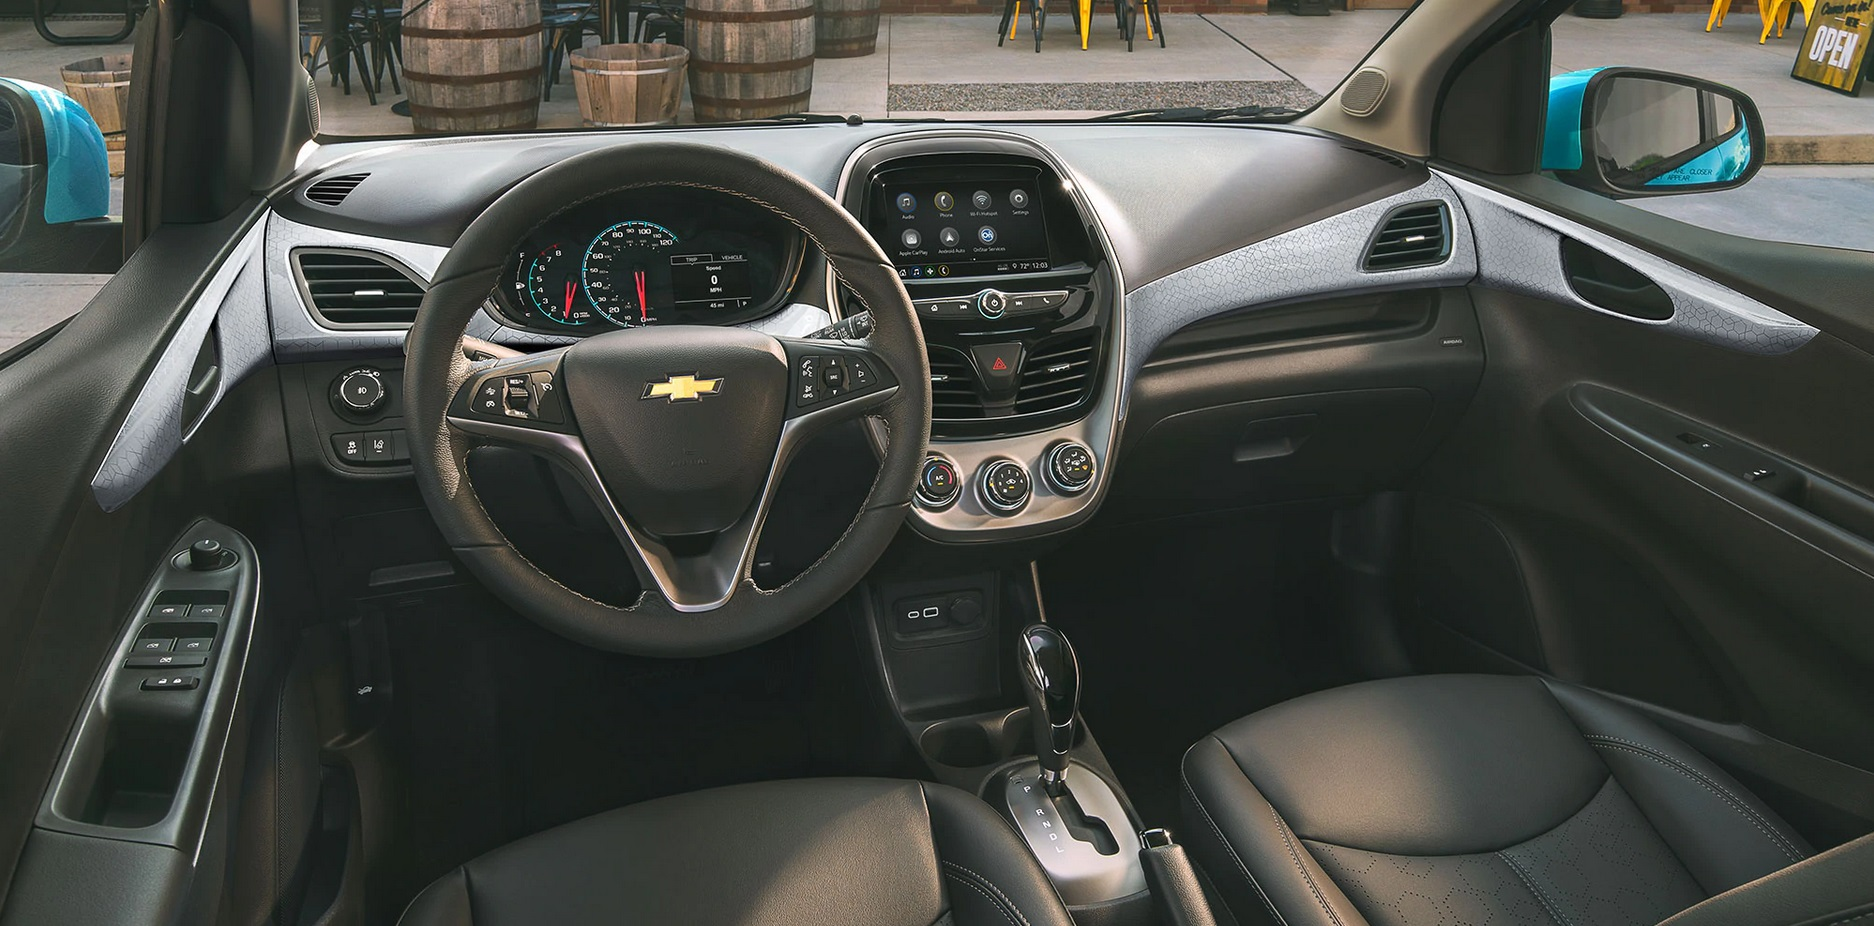 2021 Chevrolet Spark Is America S Cheapest New Car Carscoops